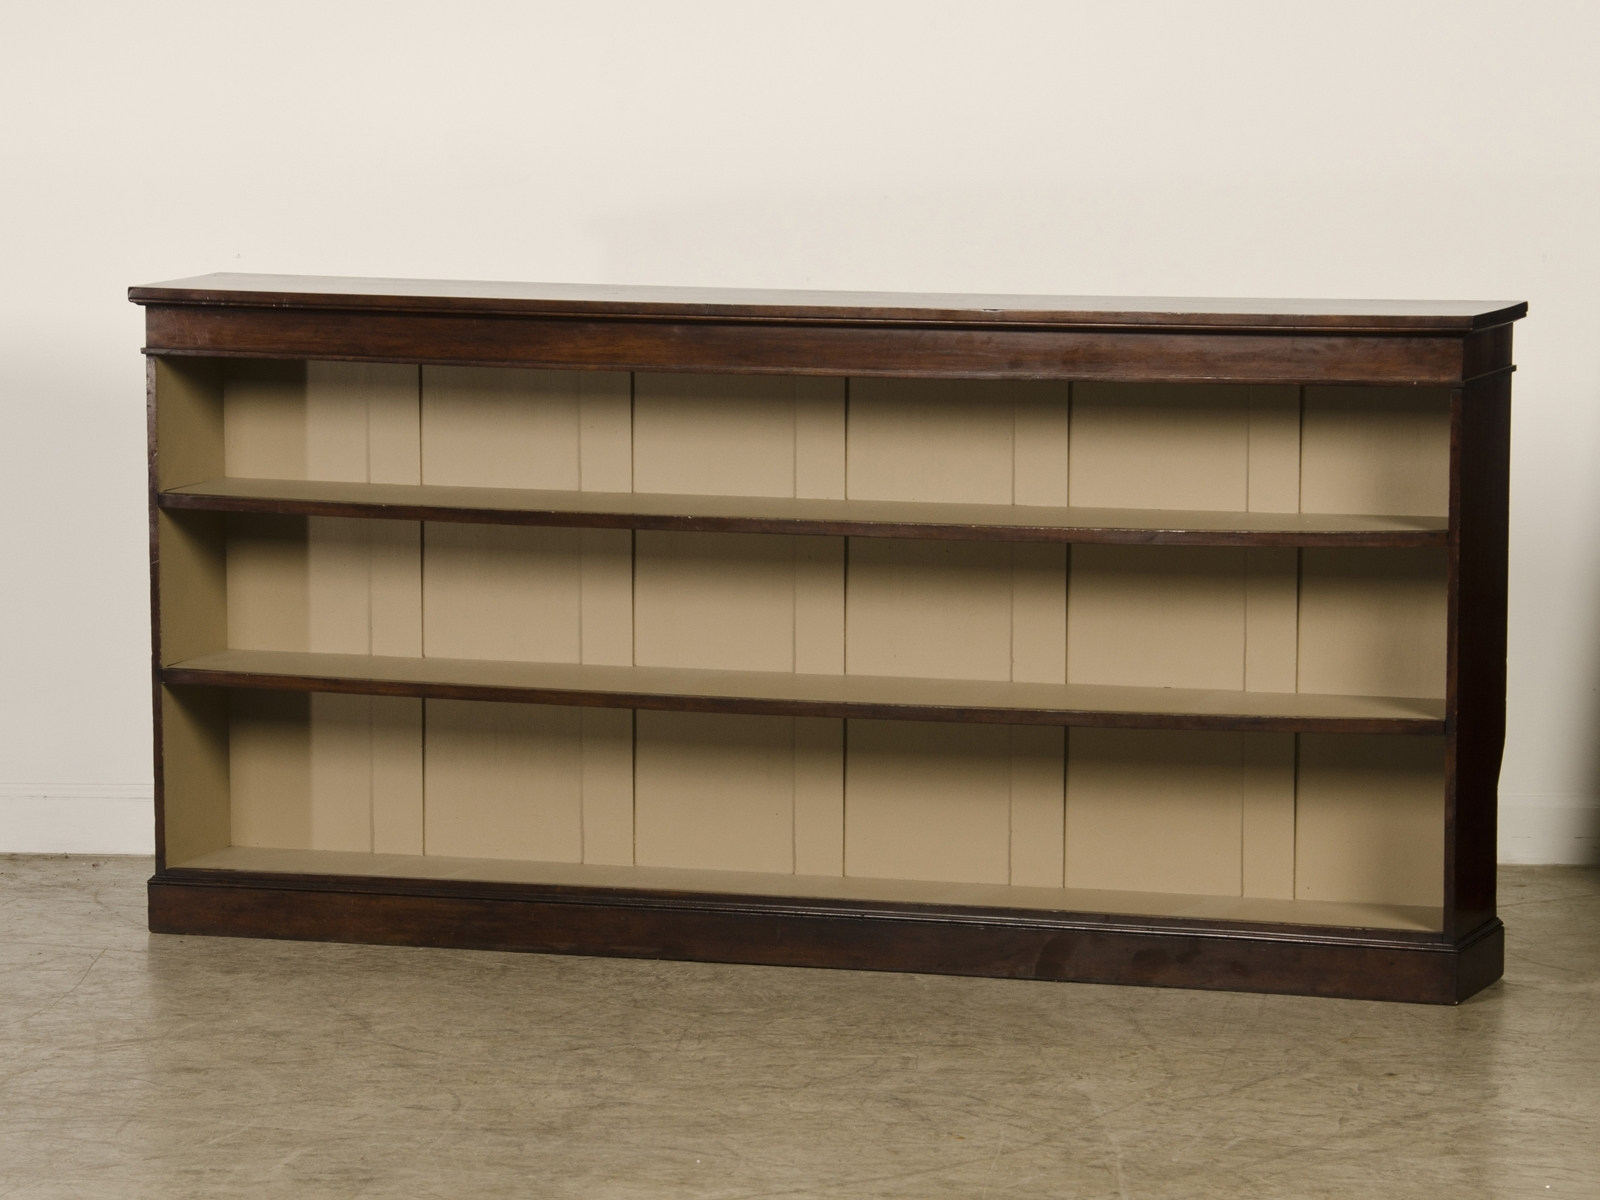 Popular Long Bookcases Pertaining To Inspirations: Cool Horizontal Bookcase For Storing Books And (View 6 of 15)